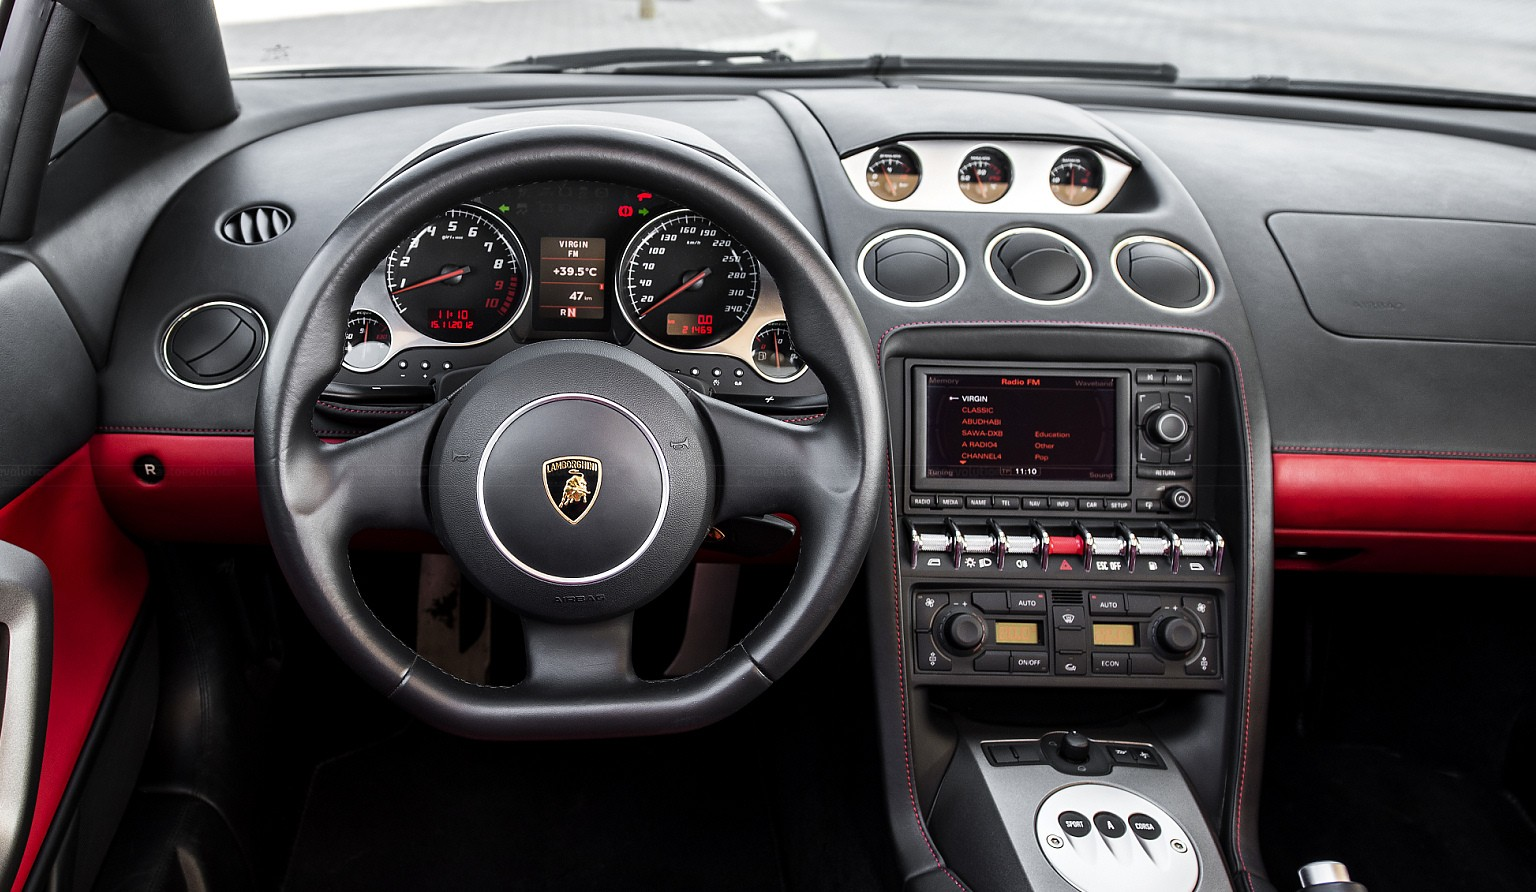 lamborghini-gallardo-dashboard